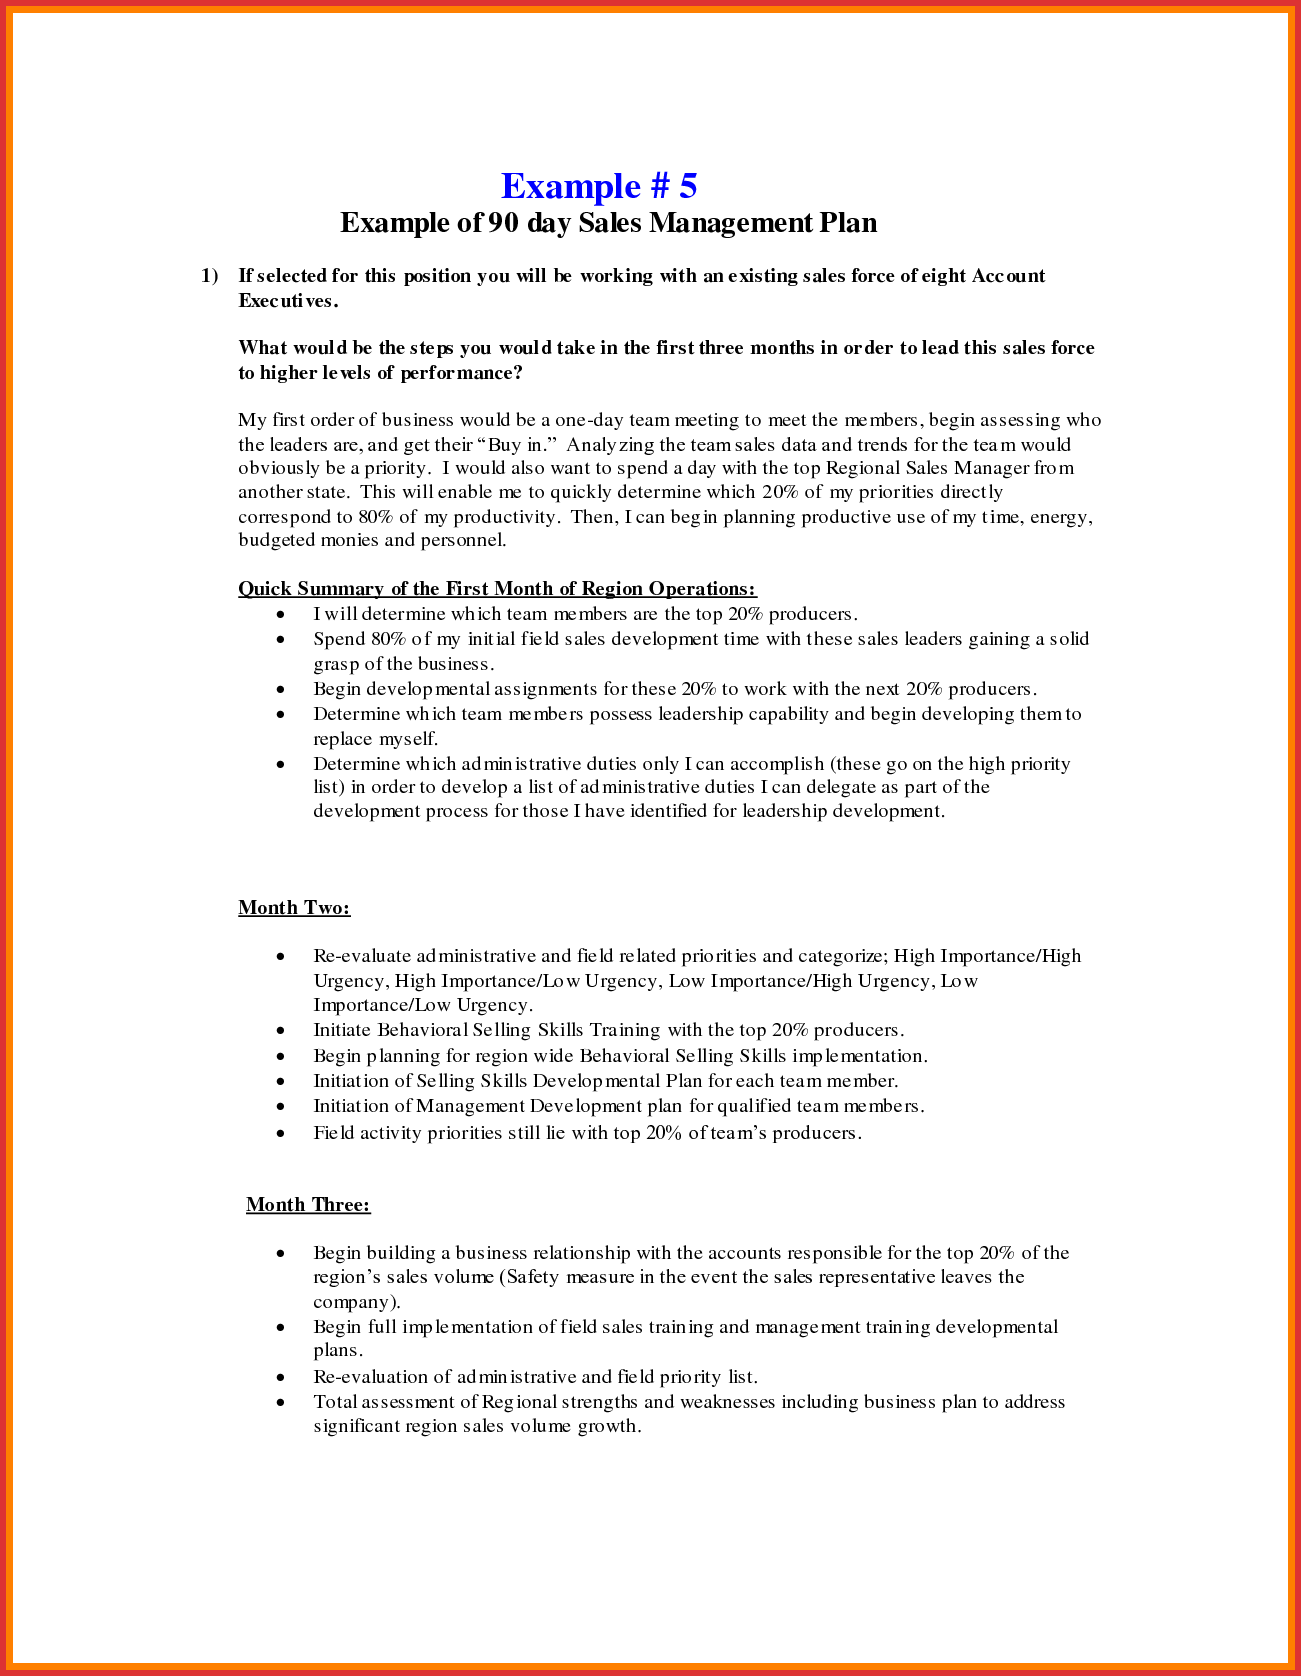 Unique 30 60 90 Day Sales Plan Template Examples | job latter